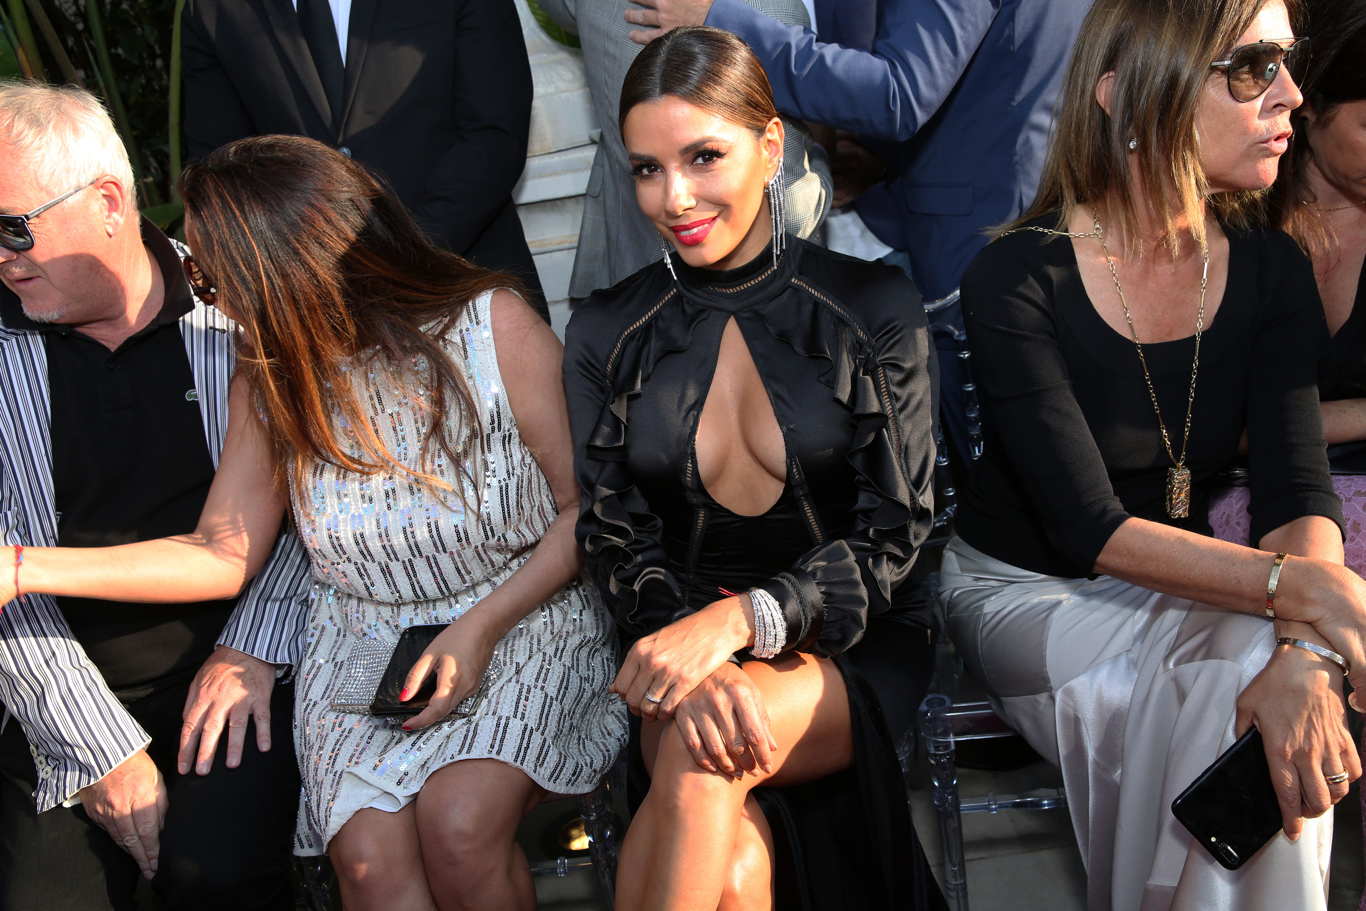 Eva Longoria at Philipp Plein's show at his villa during Cannes Film Festival.